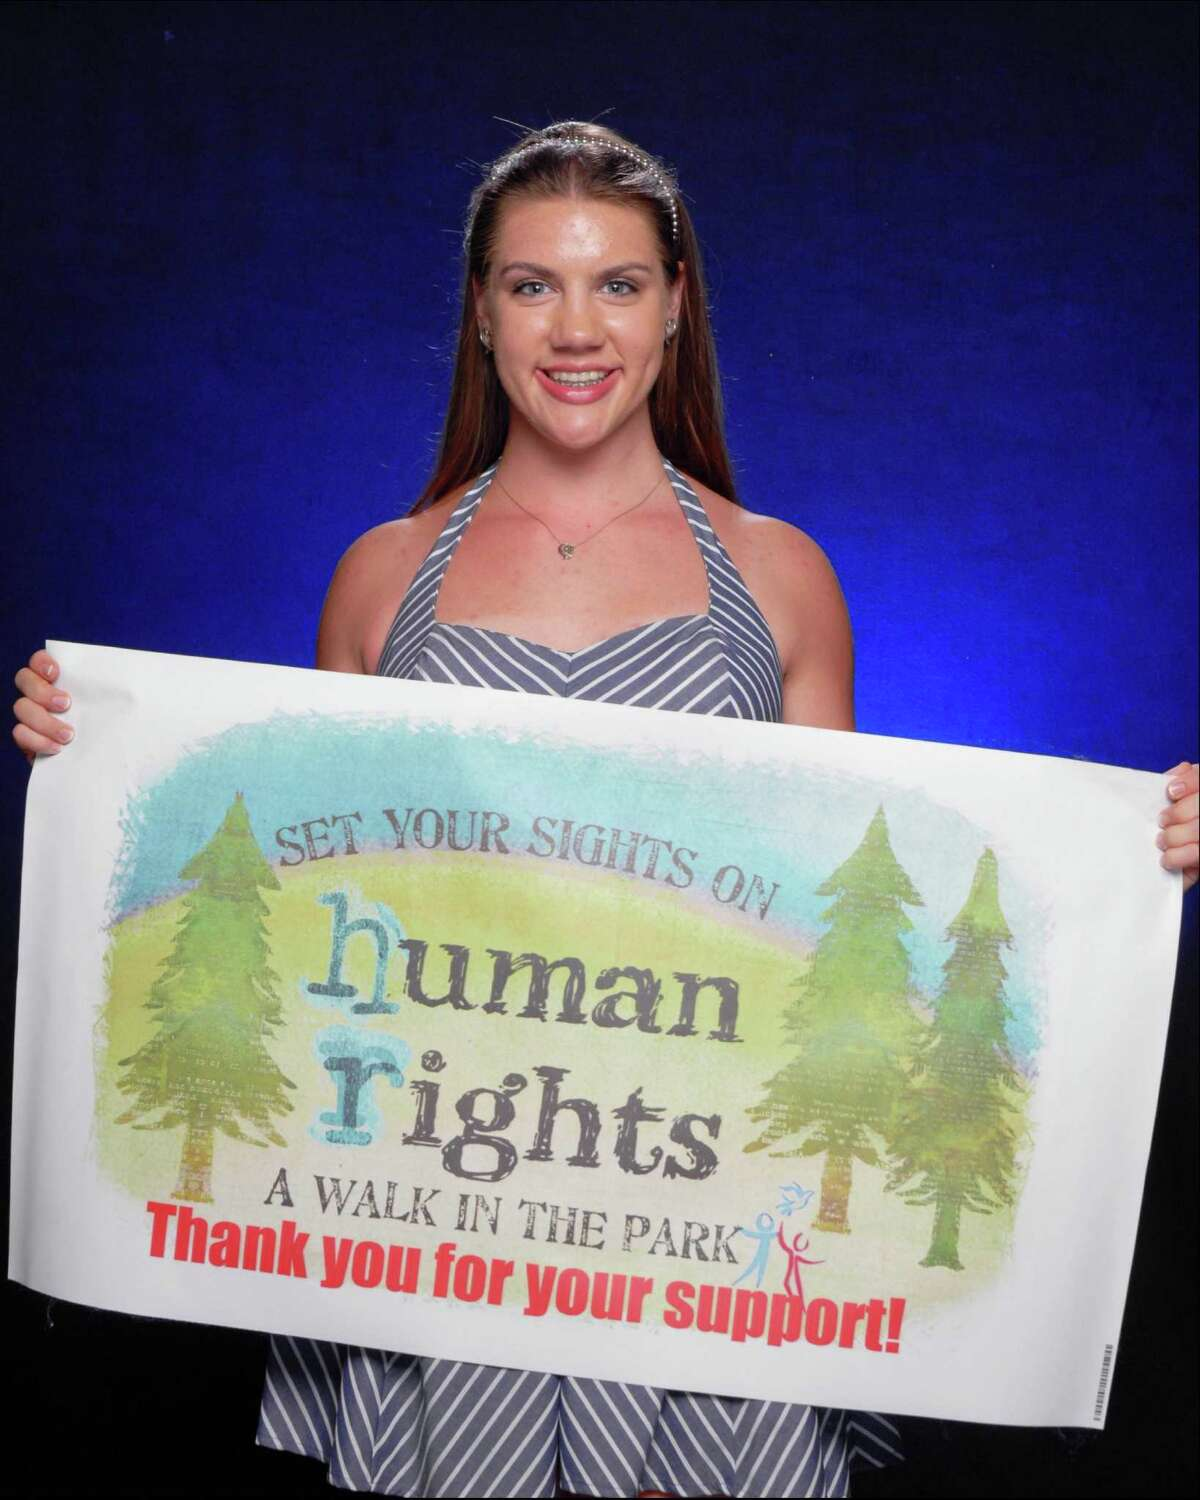 Demme Durrett is organizing the Human Rights Walk and Festival.